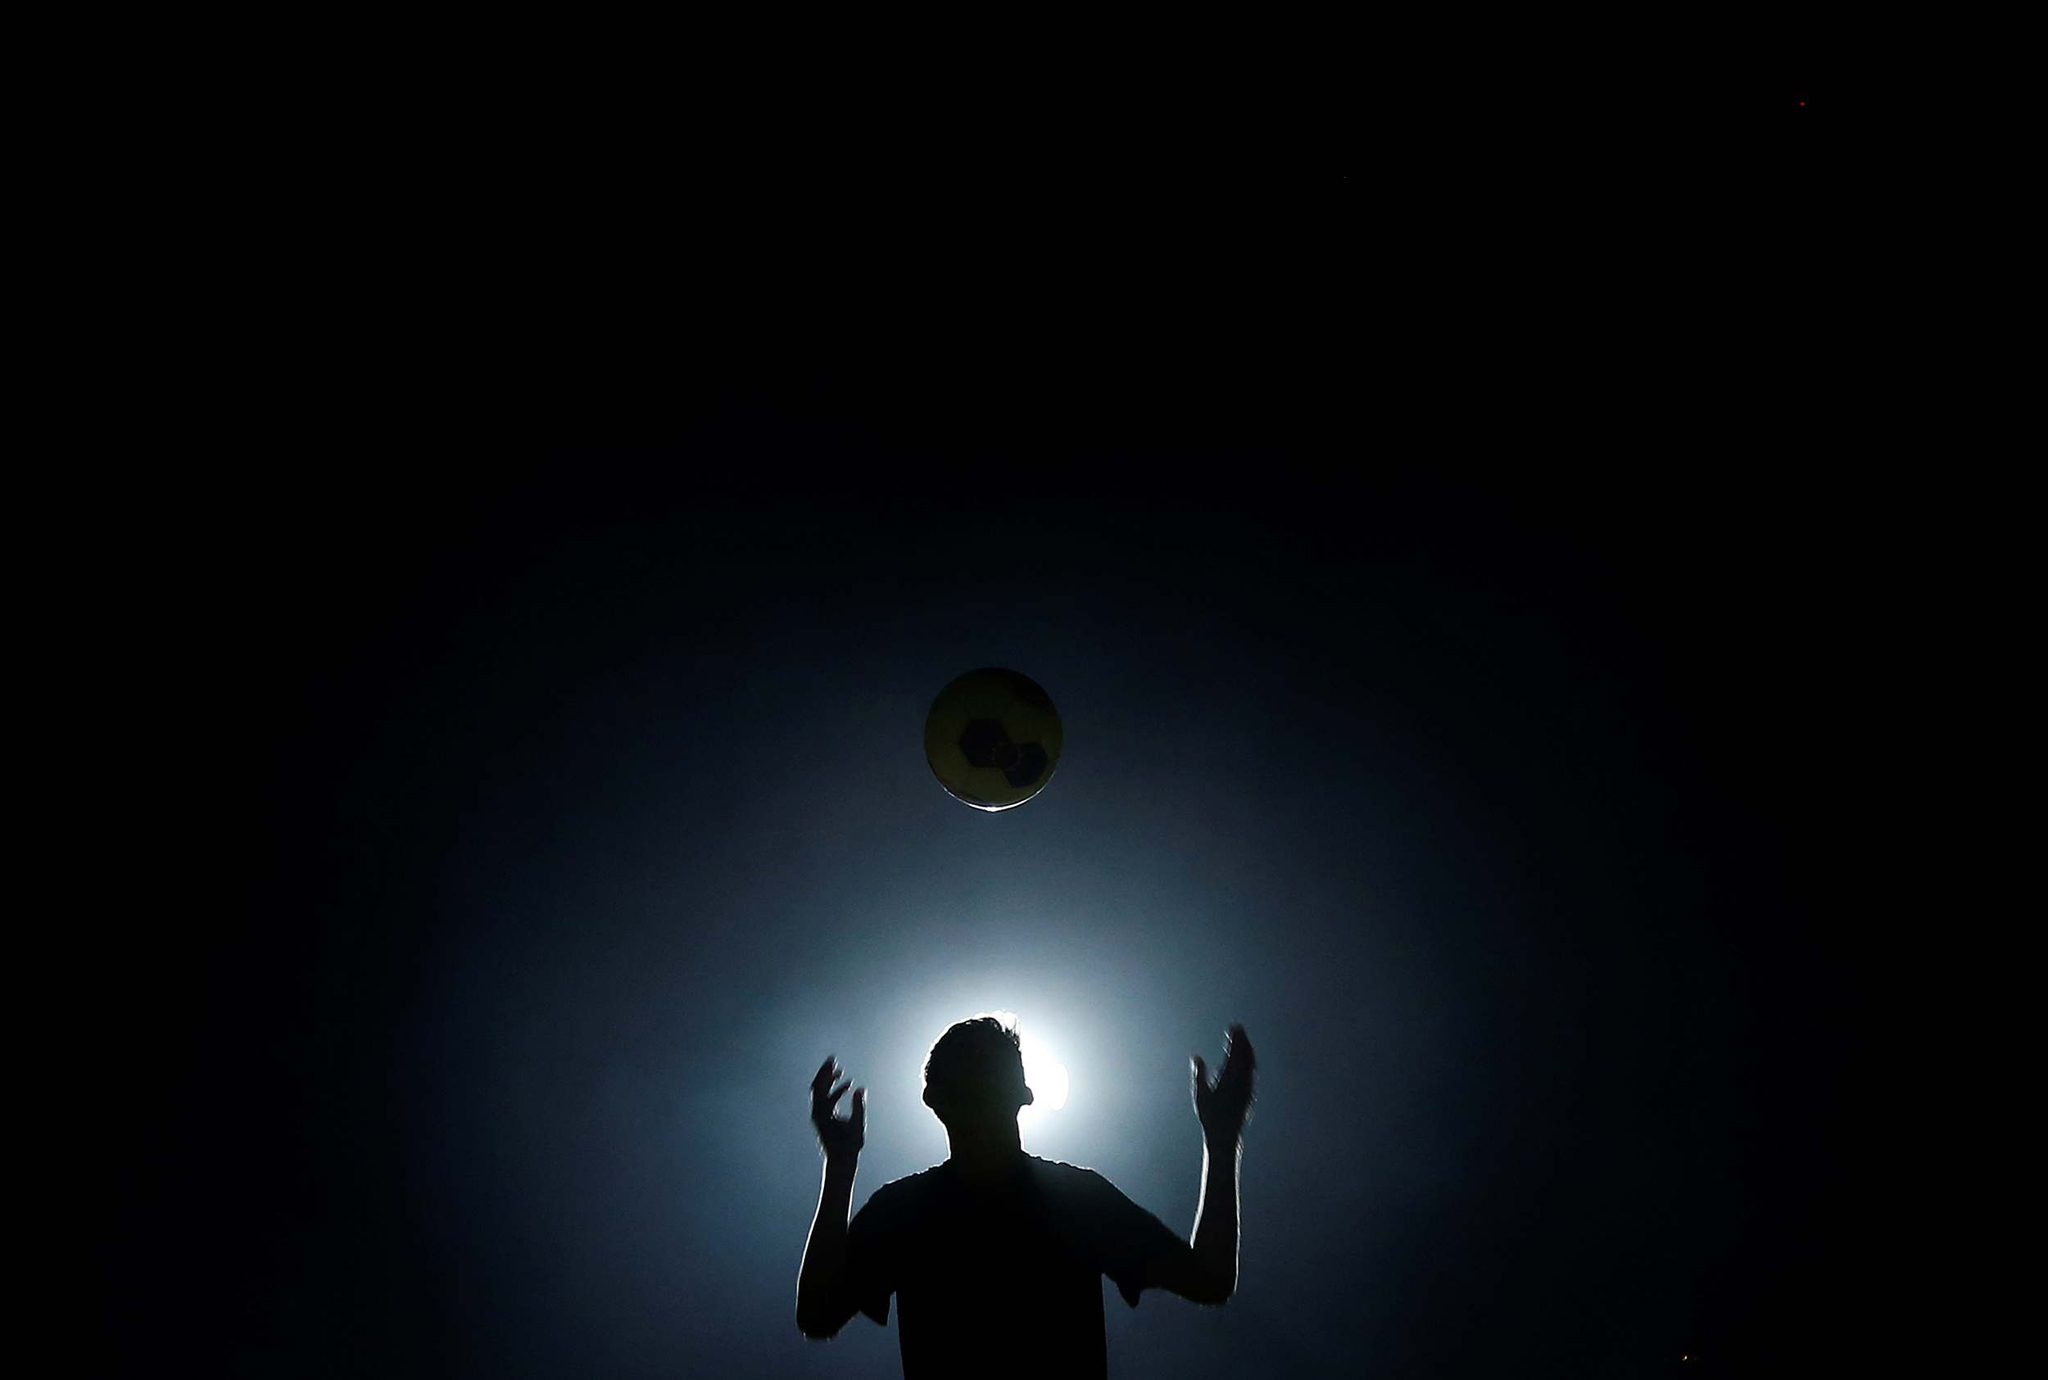 Boy is silhouetted as he plays with a soccer ball at night in Colombo...A boy is silhouetted as he plays with a soccer ball at night in Colombo June 11, 2014. The 2014 FIFA soccer World Cup will be held in Brazil from June 12 through July 13. REUTERS/Dinuka Liyanawatte (SRI LANKA - Tags: SPORT SOCCER WORLD CUP TPX IMAGES OF THE DAY)